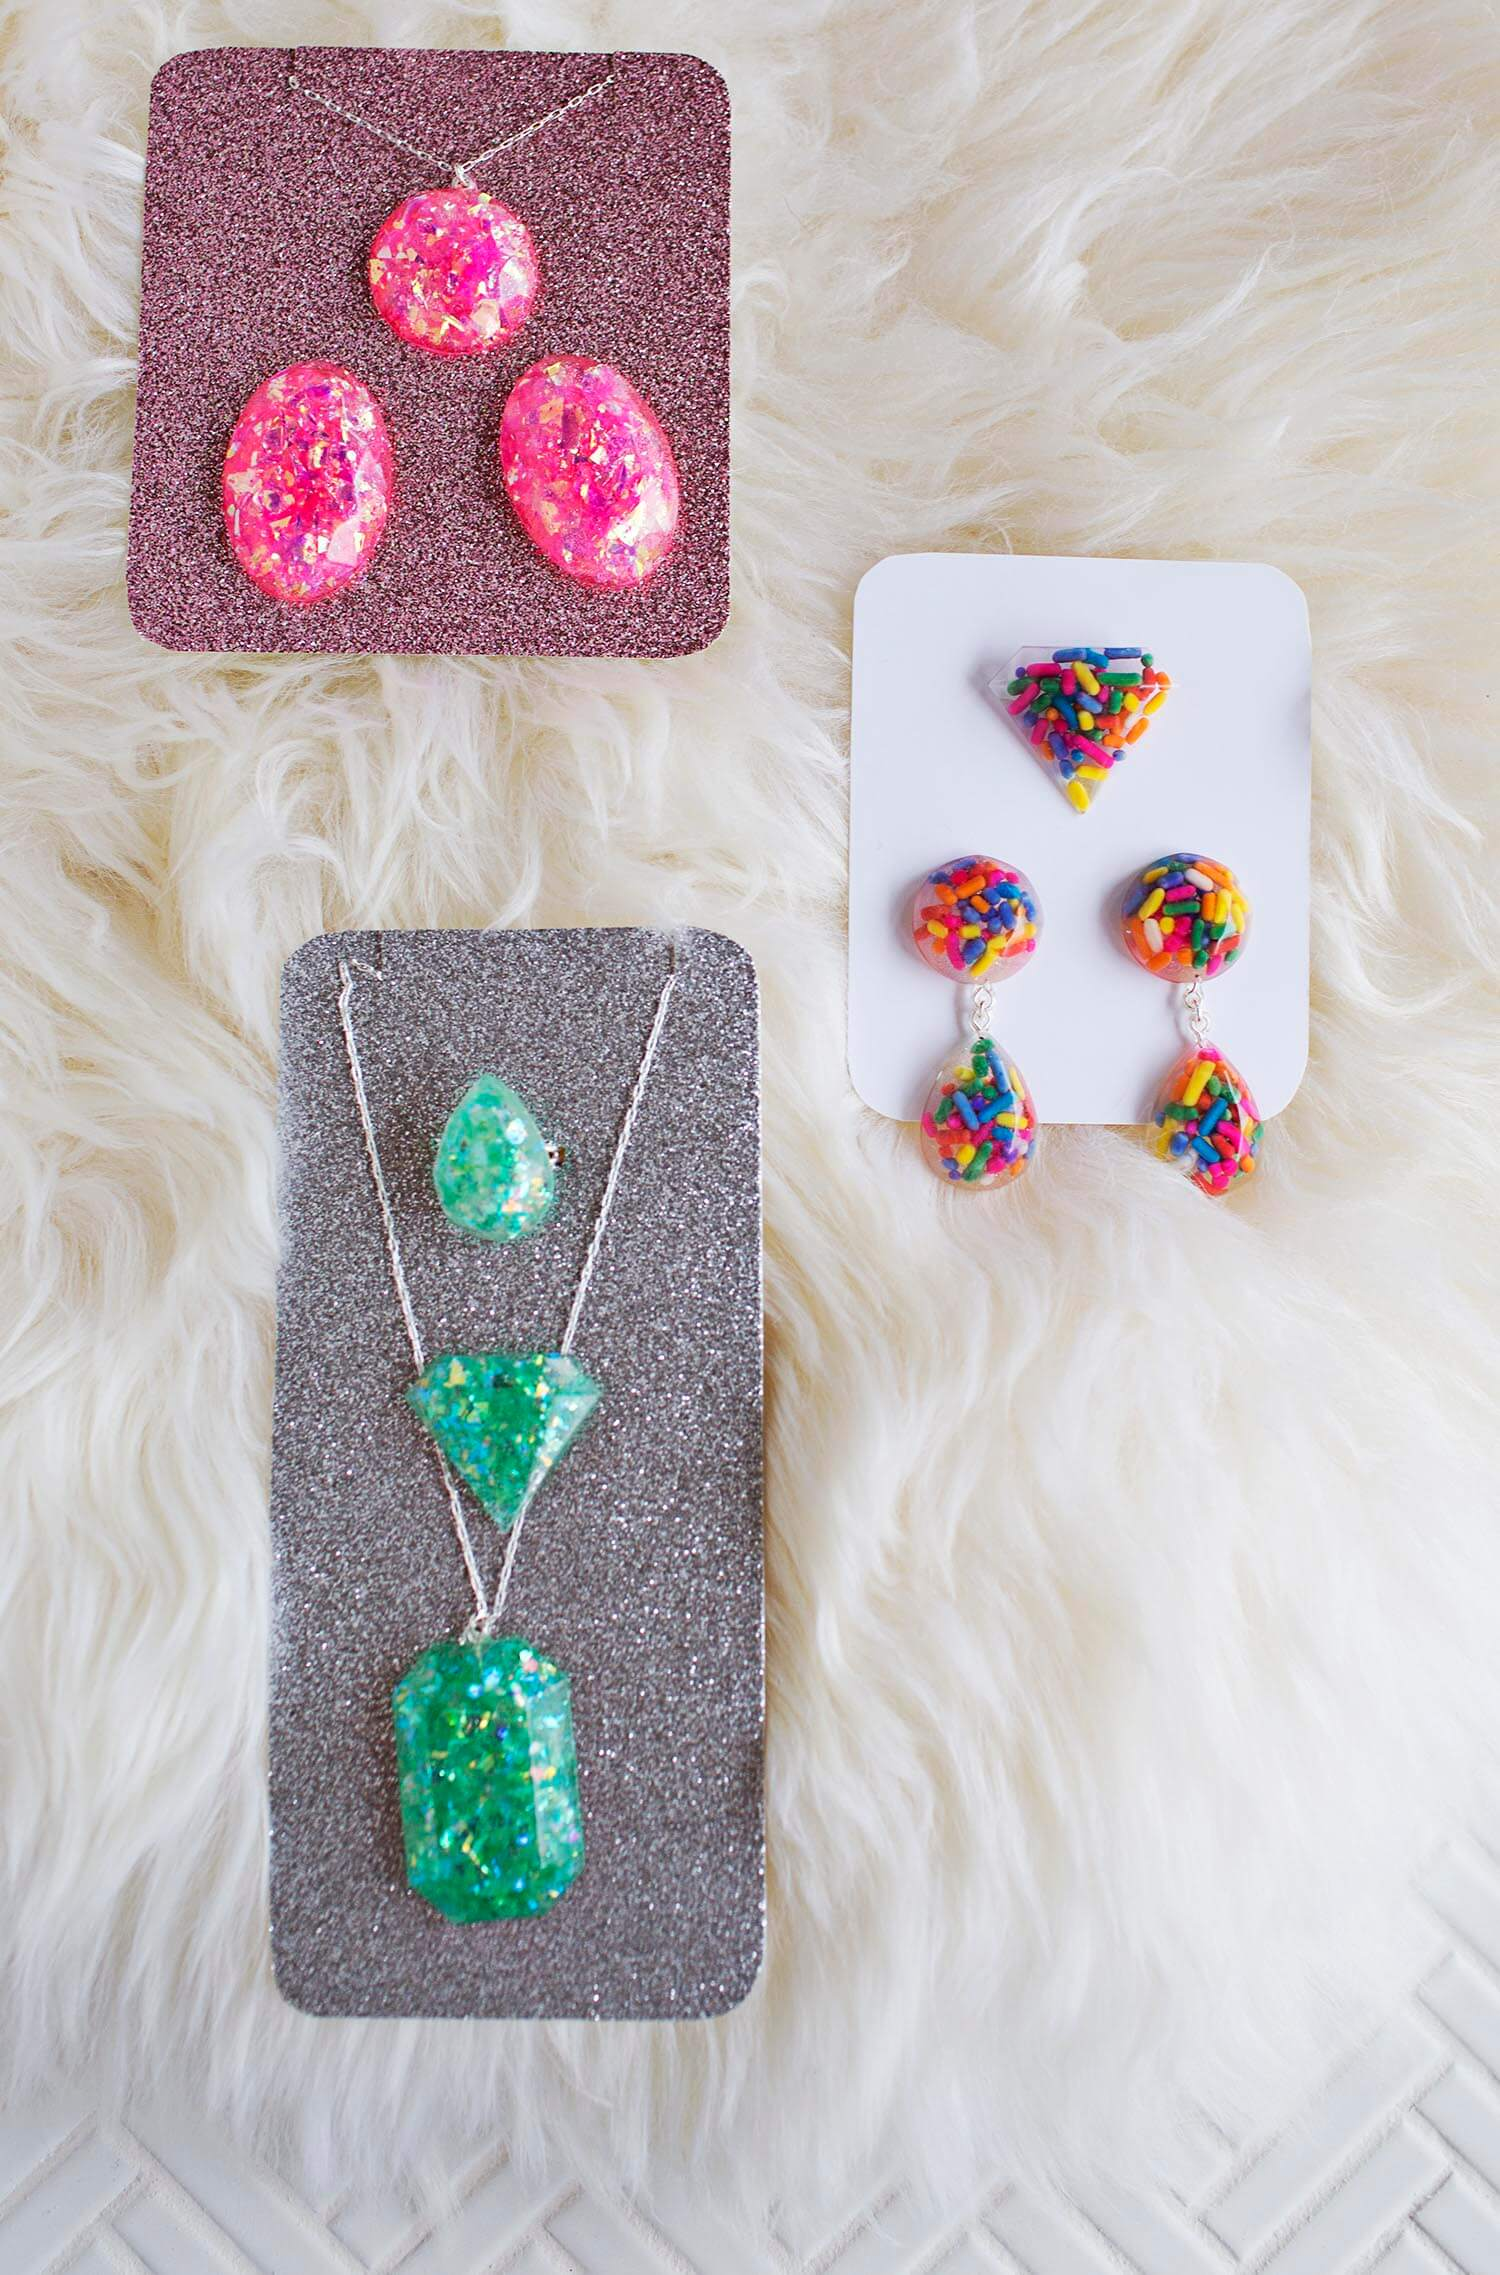 Diy epoxy resin jewelry